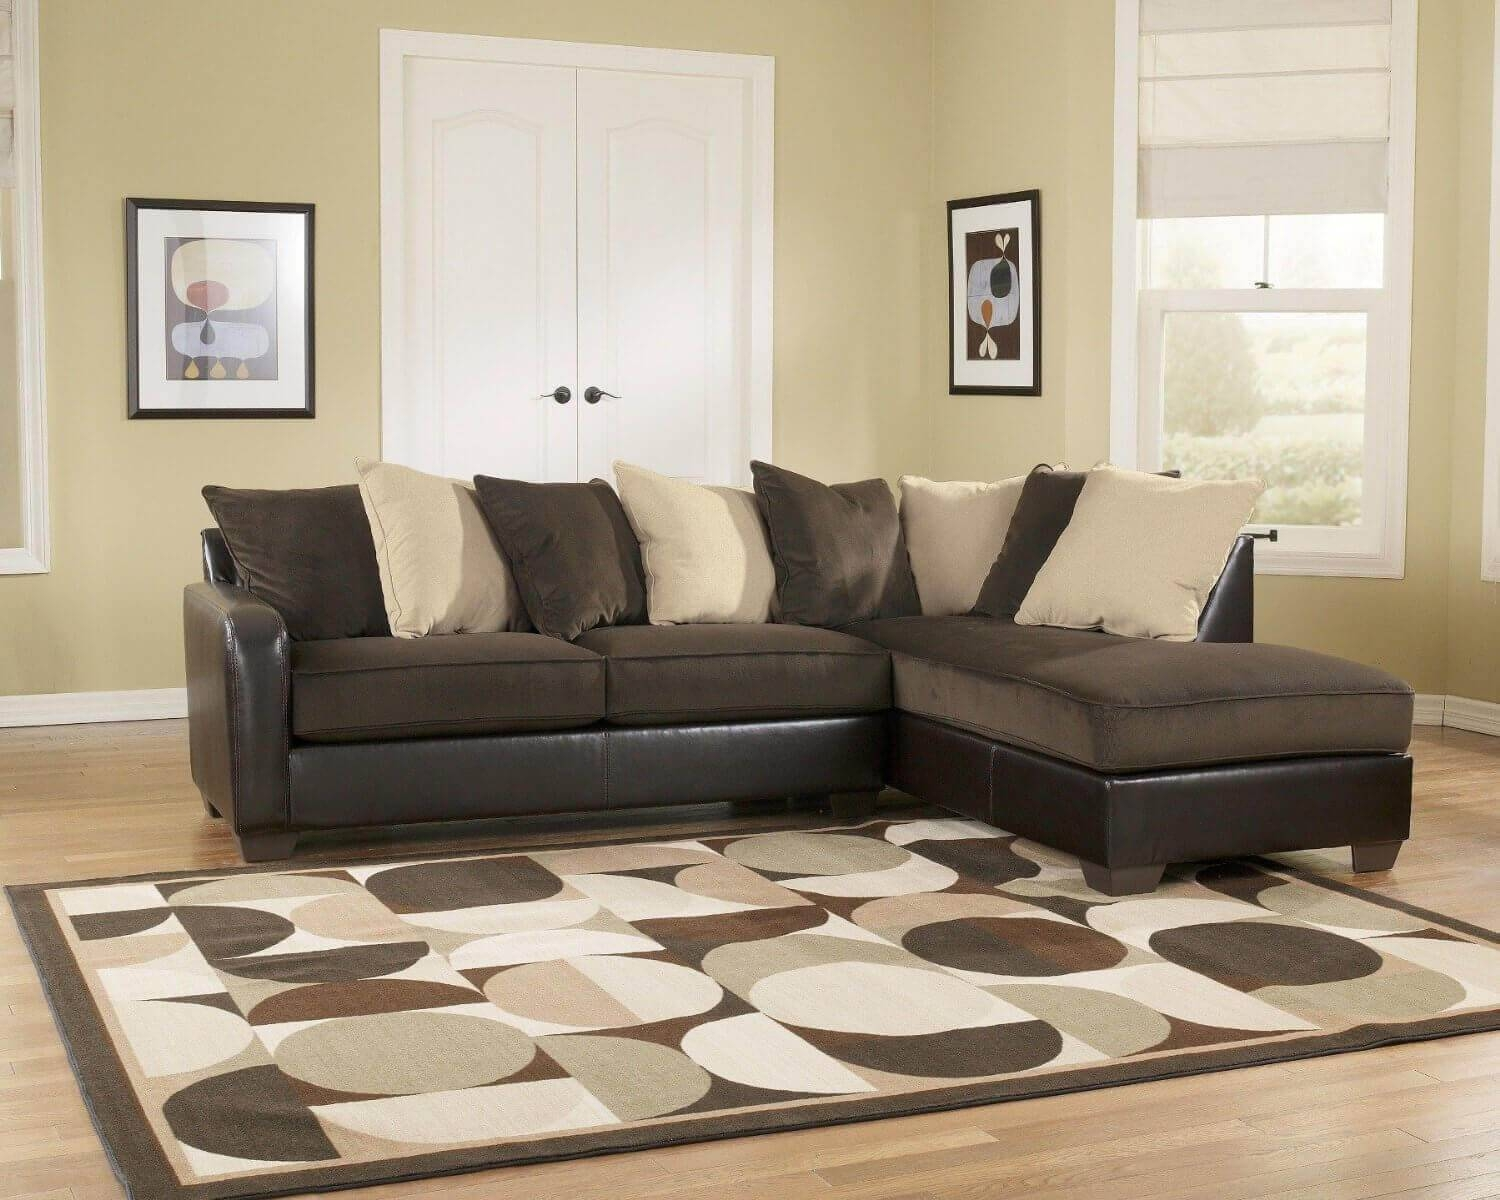 100 Beautiful Sectional Sofas Under $1,000 inside Chocolate Brown Sectional Sofa (Image 1 of 30)